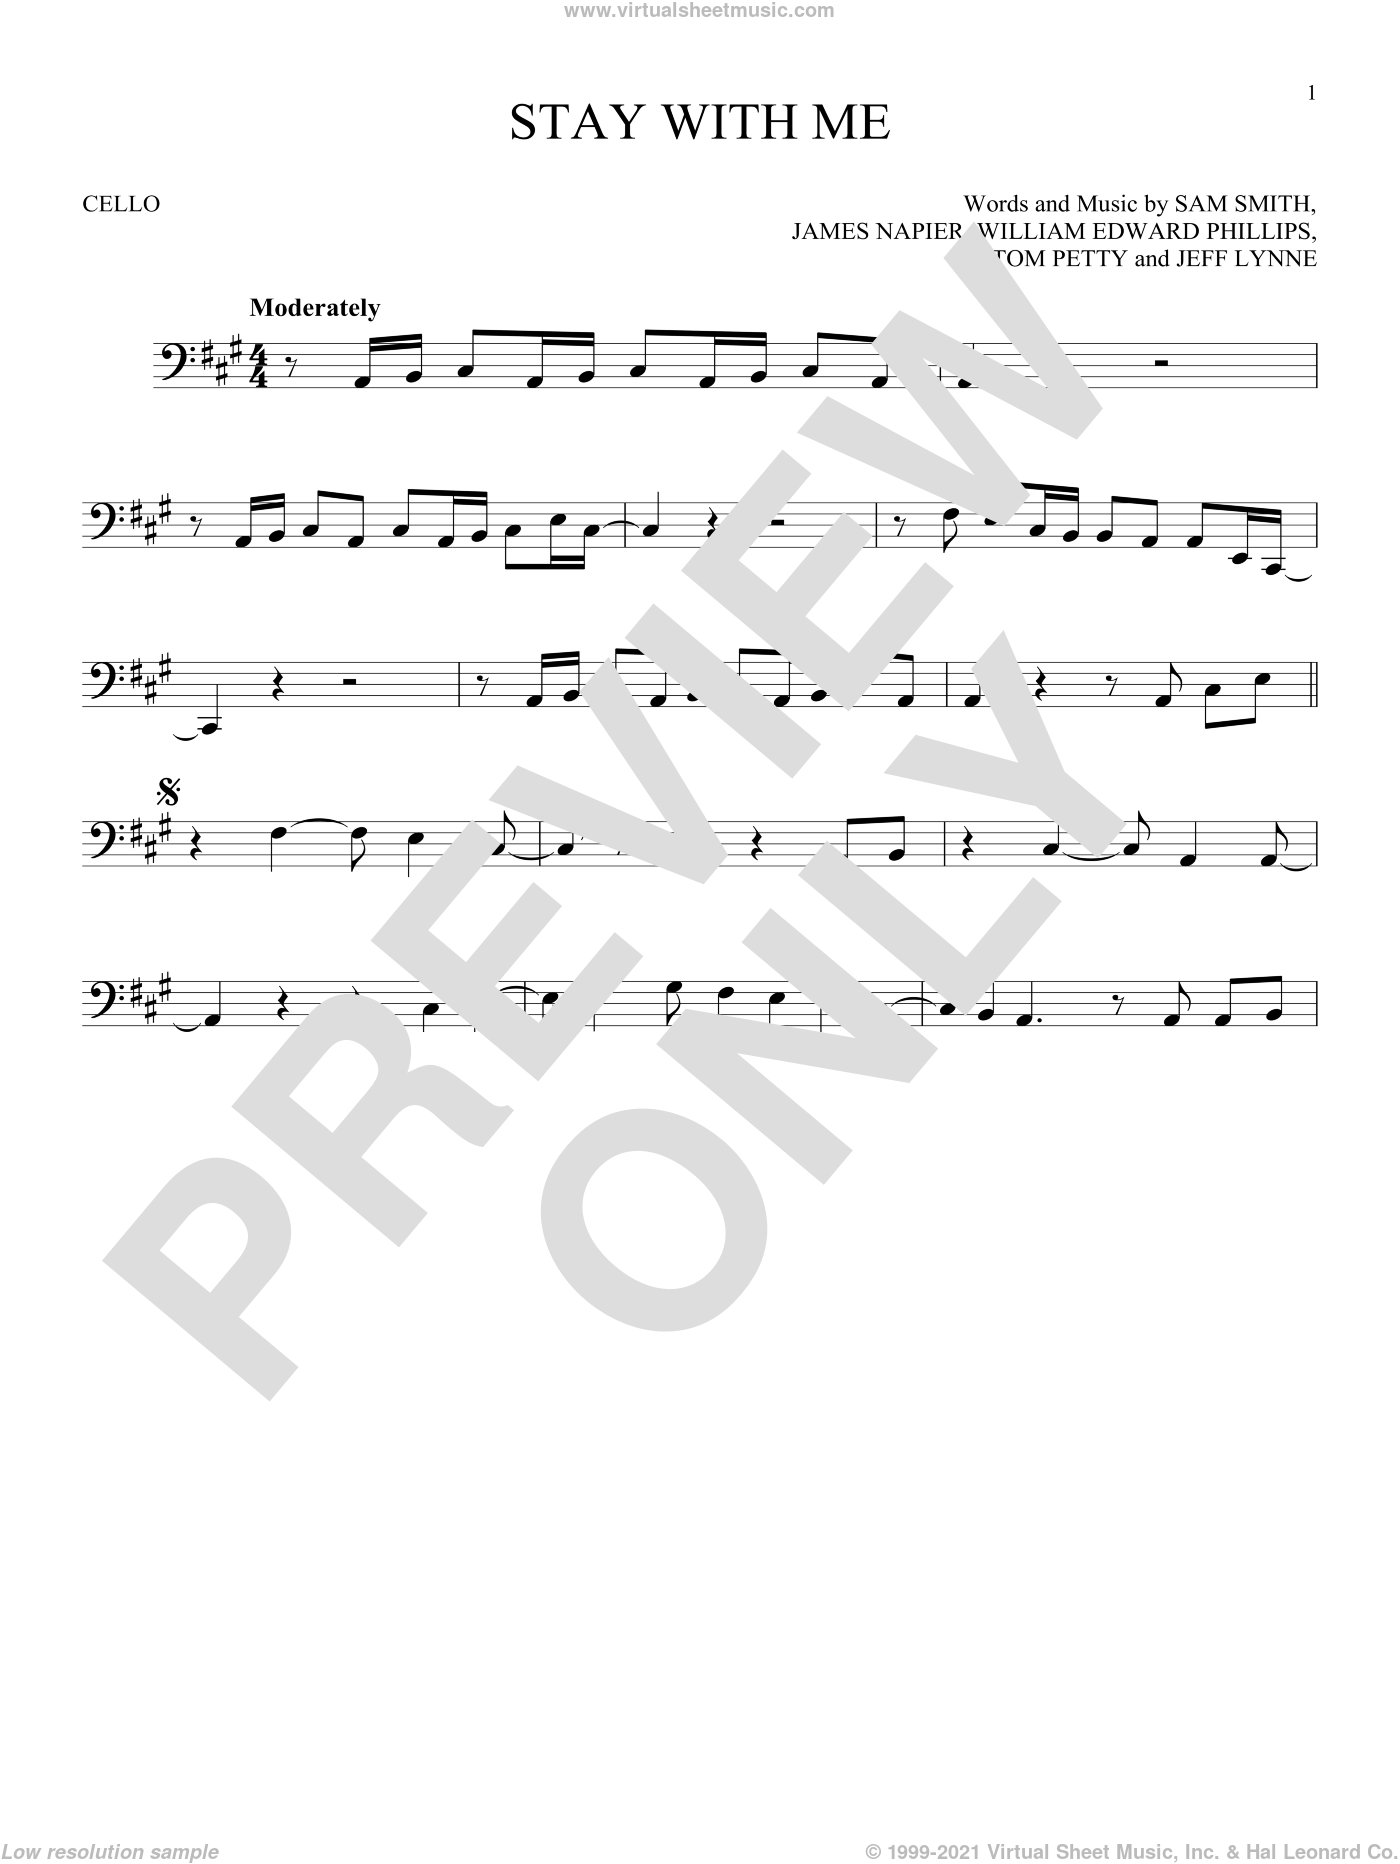 Stay With Me sheet music for cello solo by Sam Smith, James Napier, Jeff Lynne, Tom Petty and William Edward Phillips, intermediate skill level